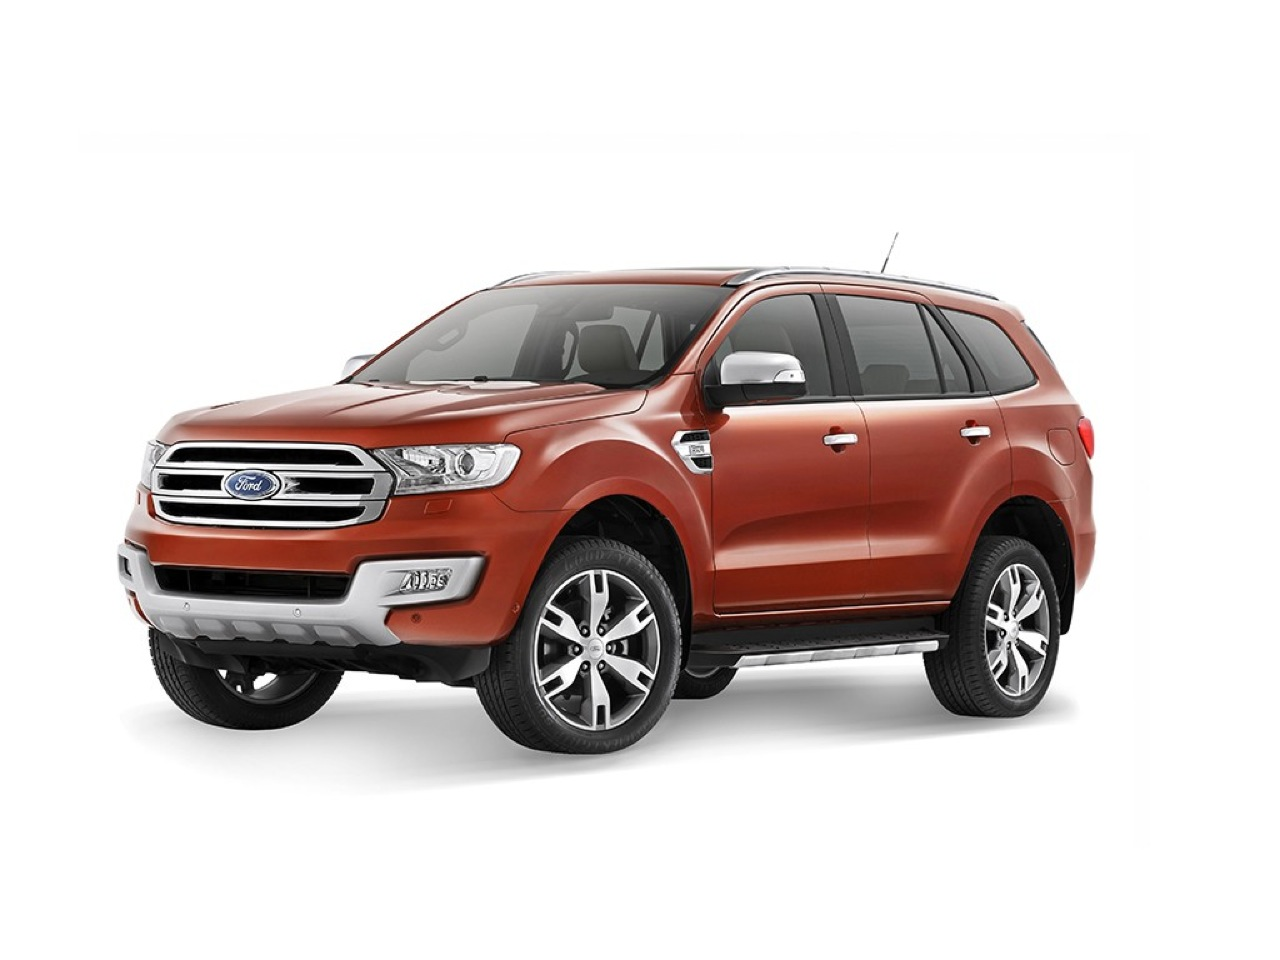 2015 ford everest 03